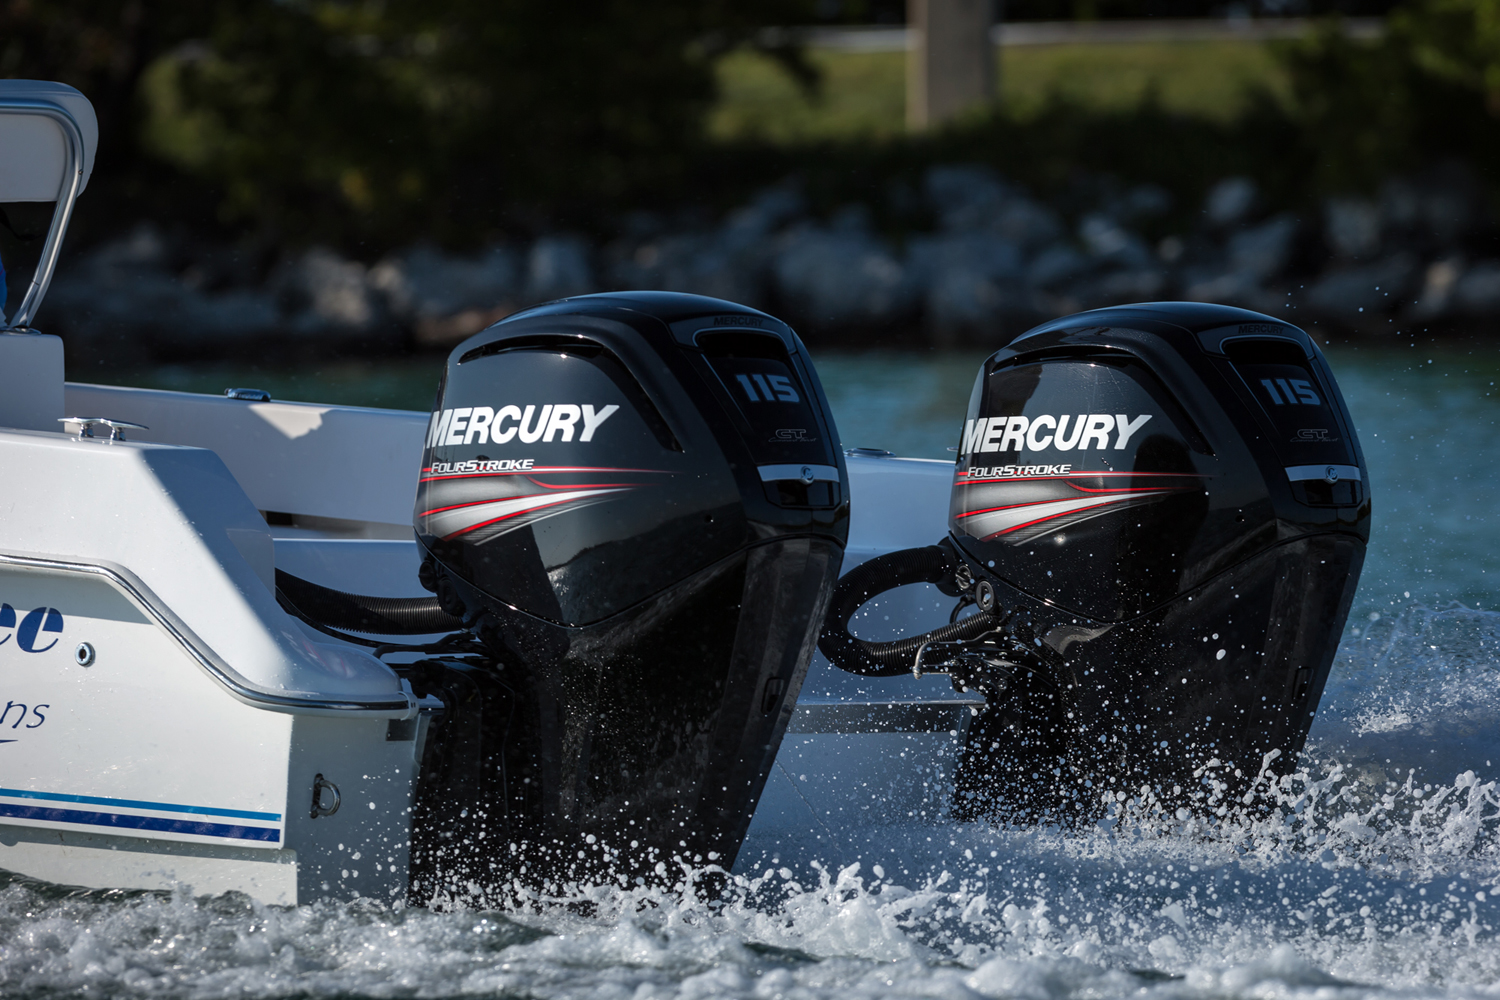 mercury 115 wiring diagram carrier infinity thermostat new 150 fourstroke outboard debuts - boats.com